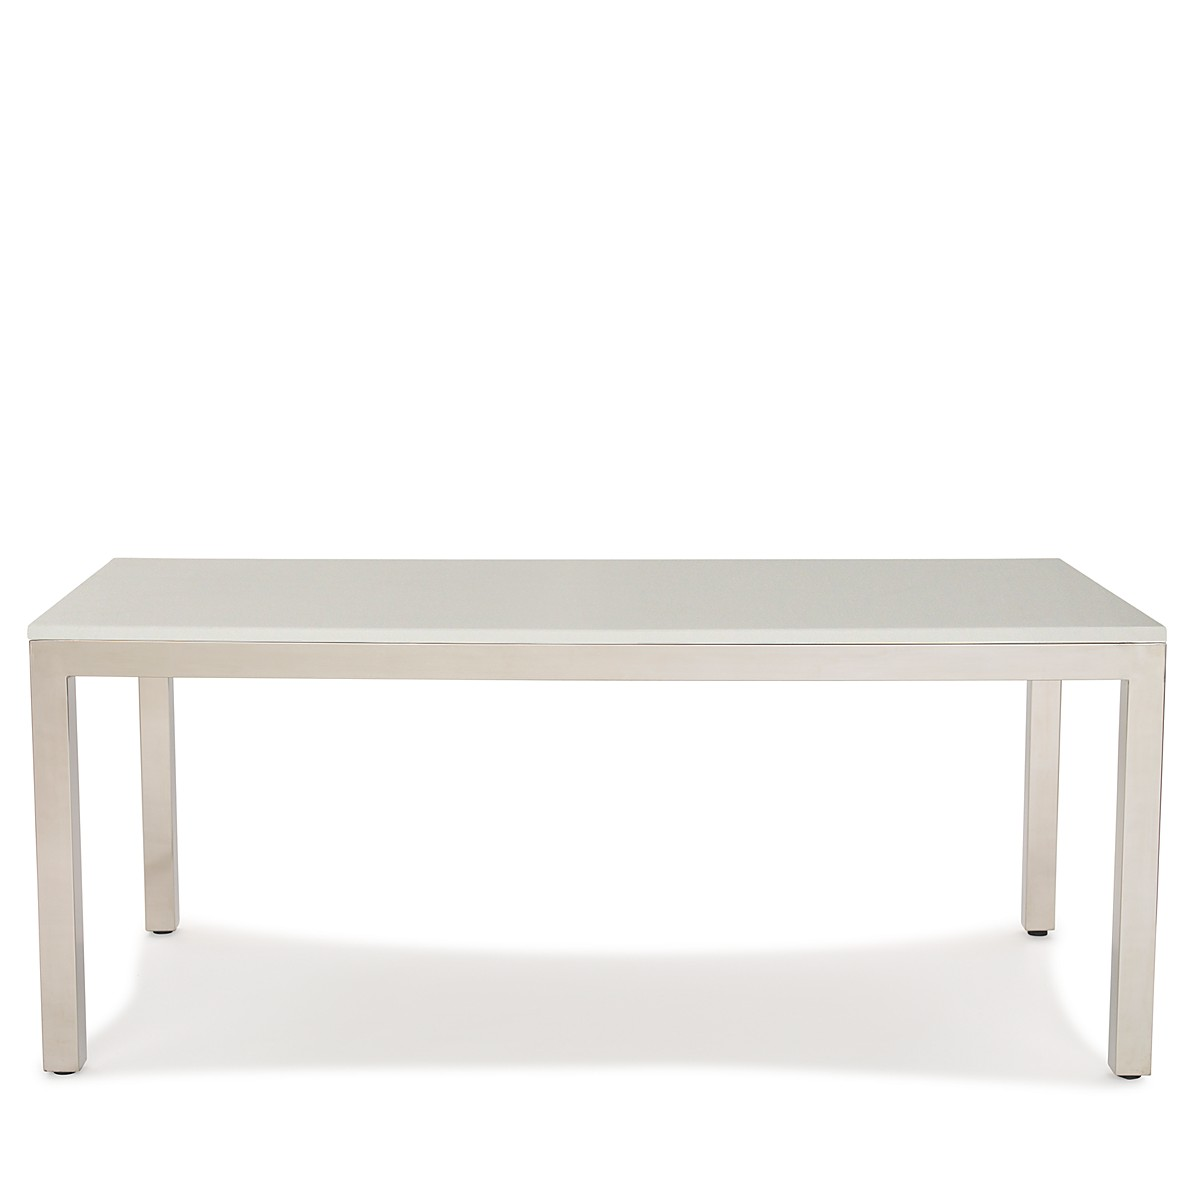 parsonsbench drawers height hammary table bench threshold item with three trim width and parsons cocktail products